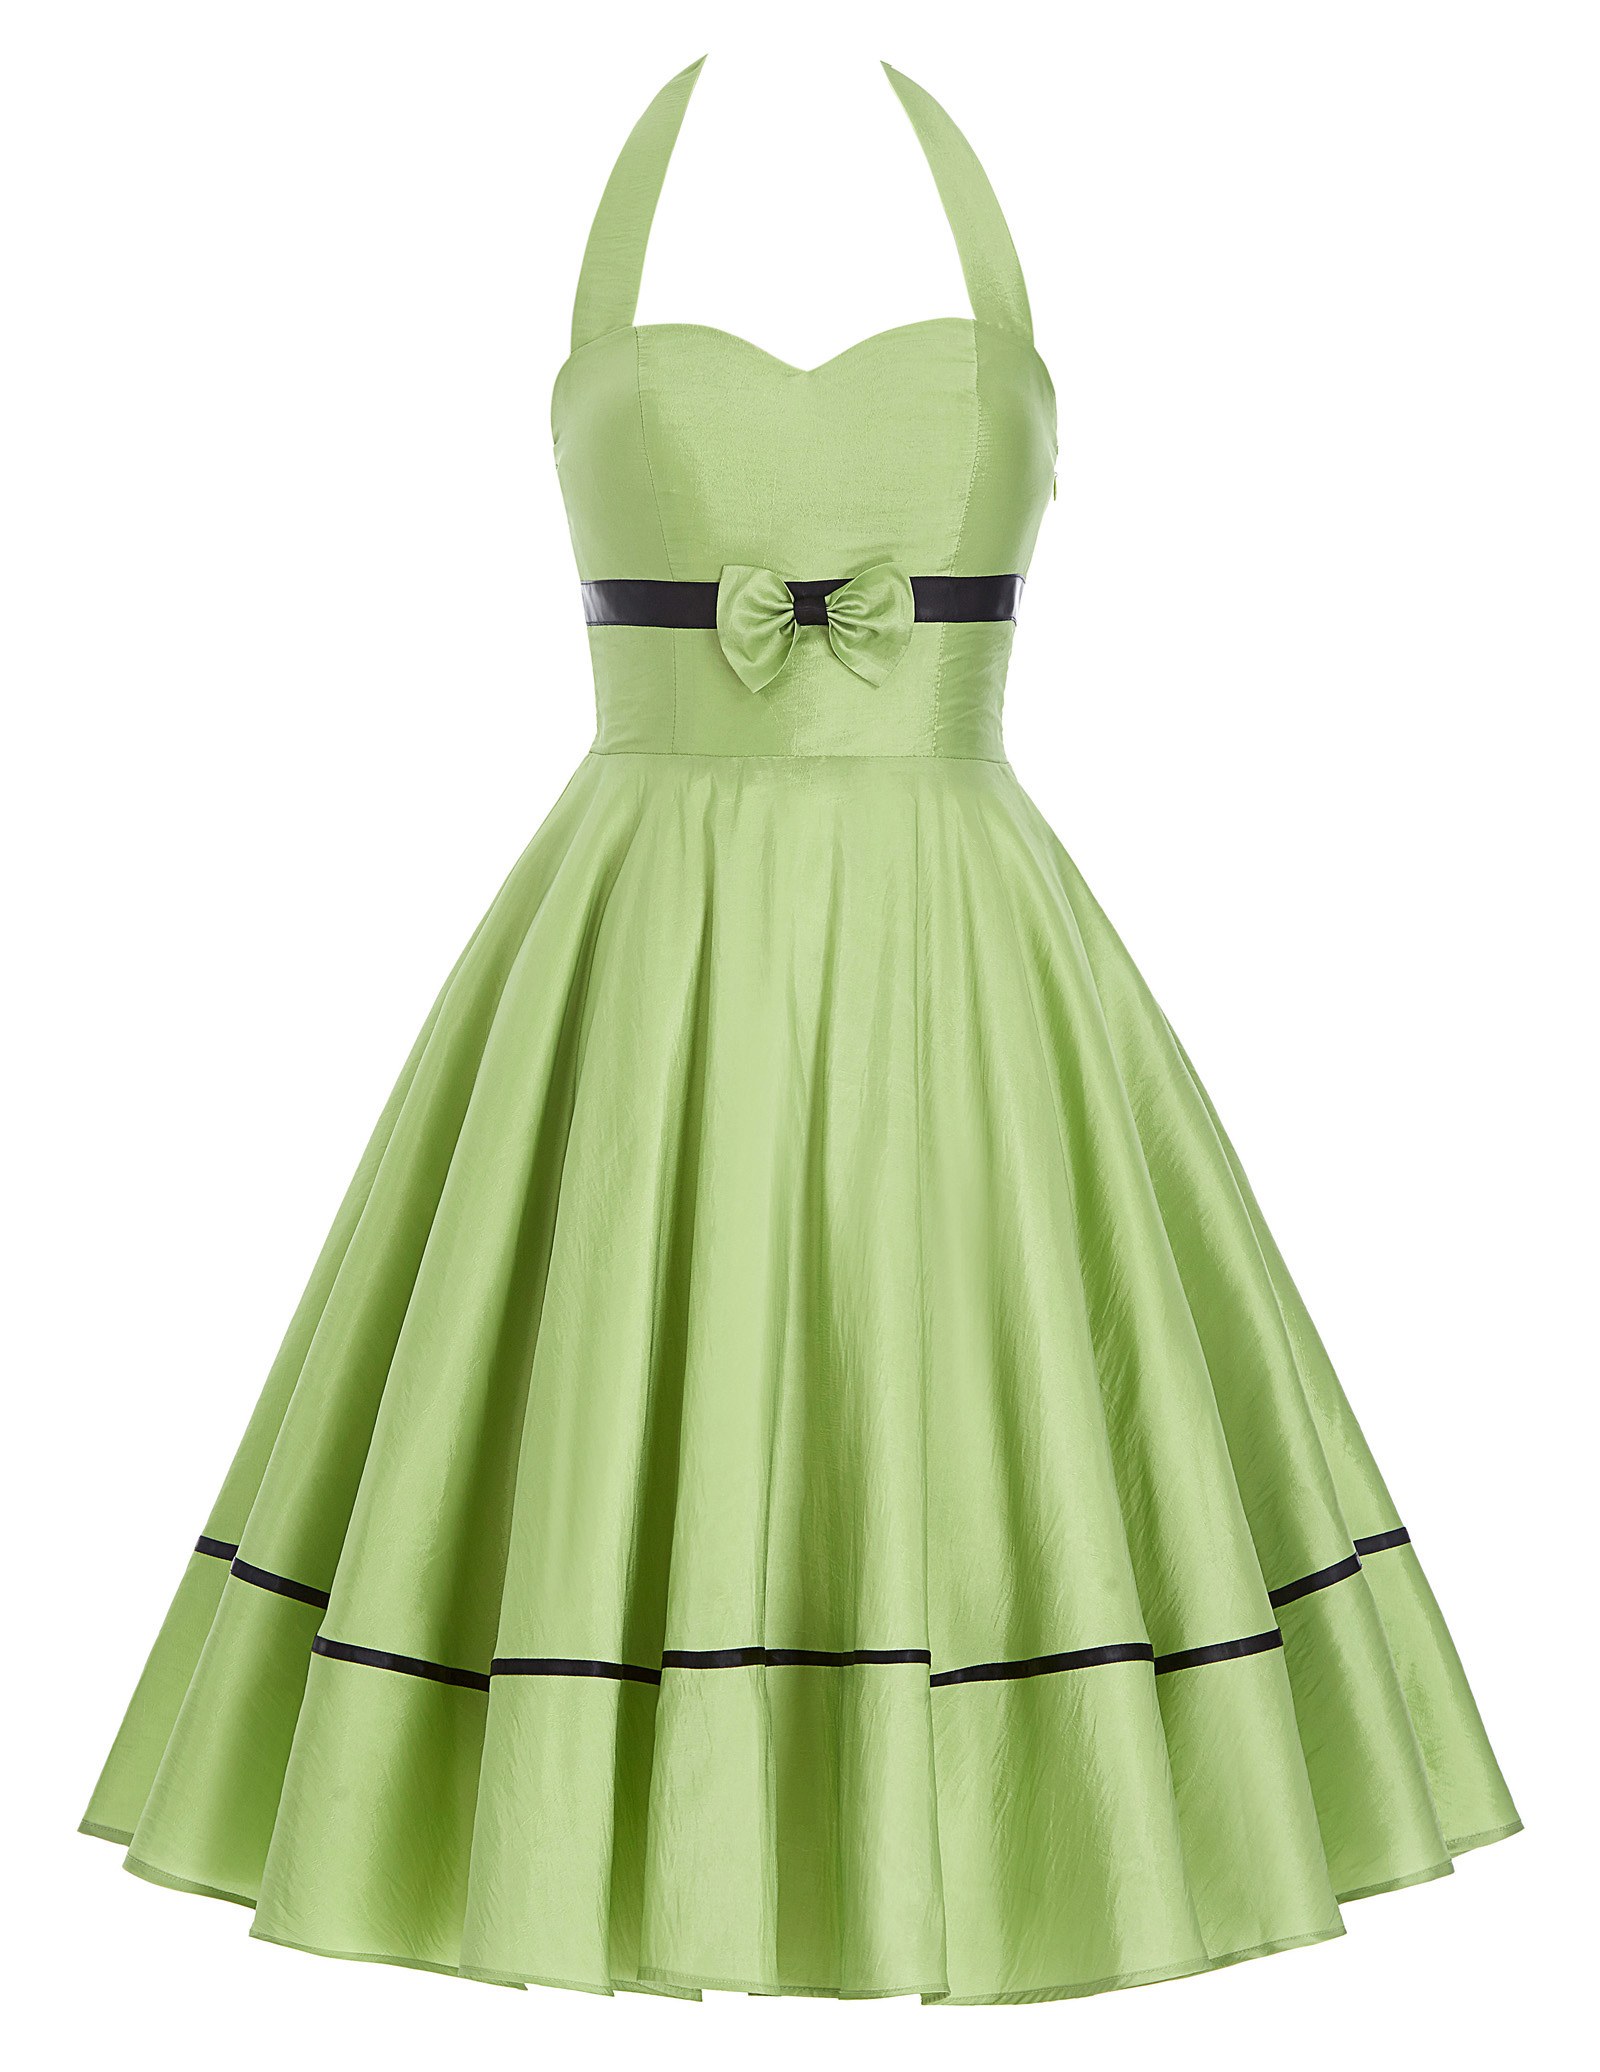 summer dress women Stock Retro 50s 60s Vintage Bow-Knot Decorated Halter N/T Taffeta Party Picnic a line Dress business office